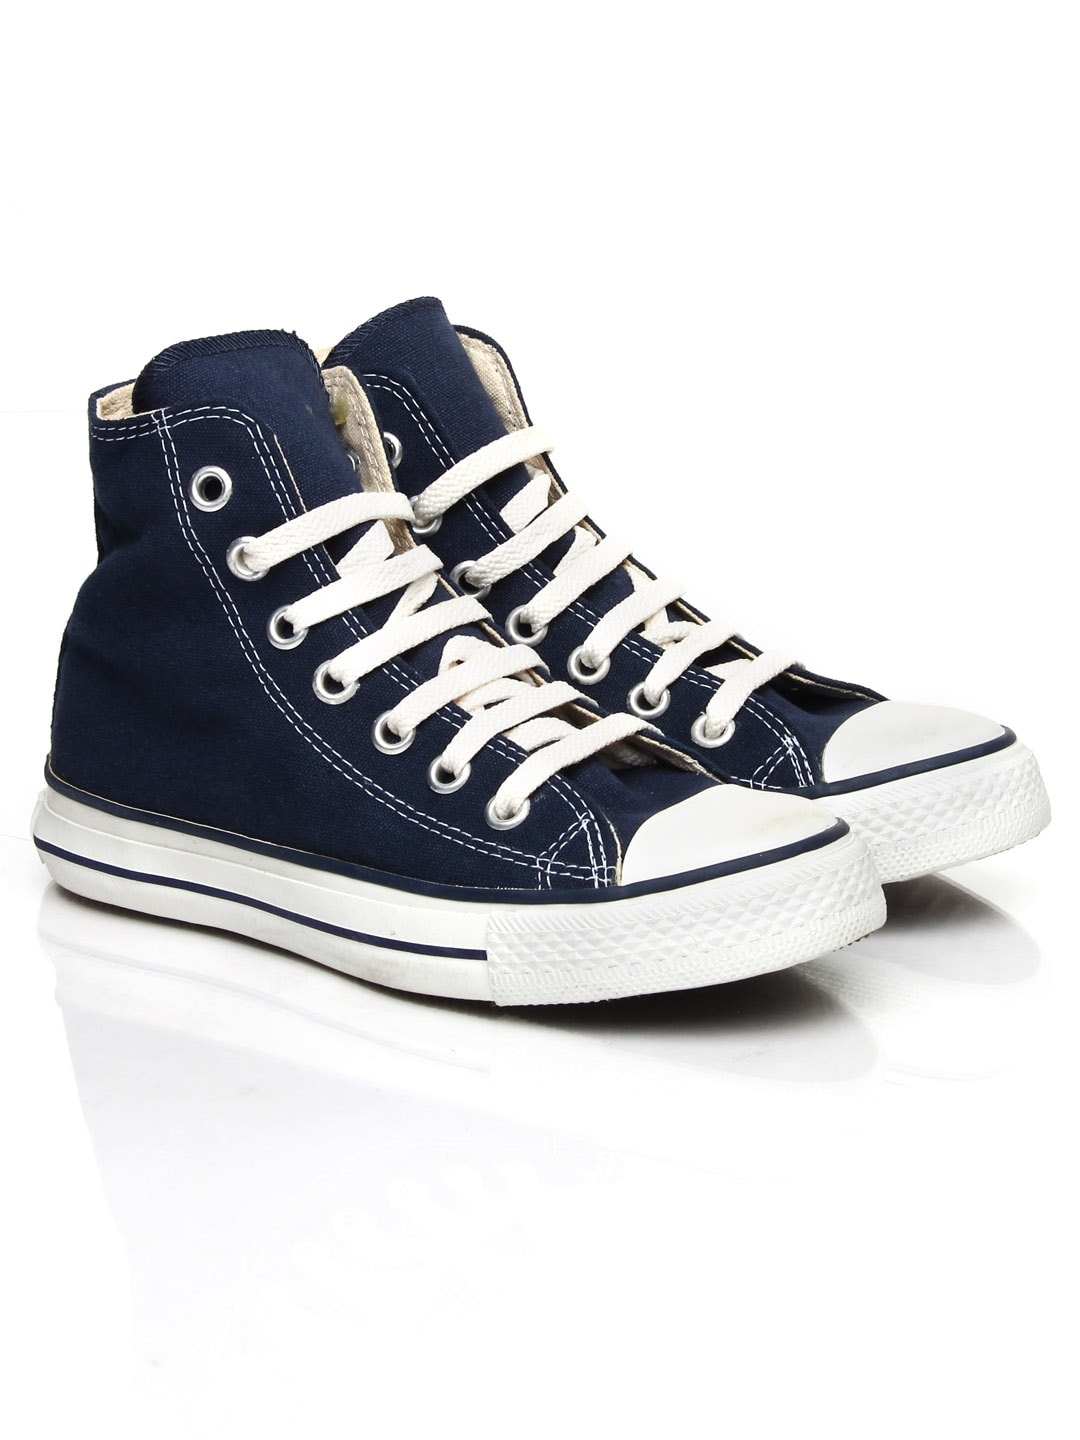 Buy Converse Shoes Online India Cheap